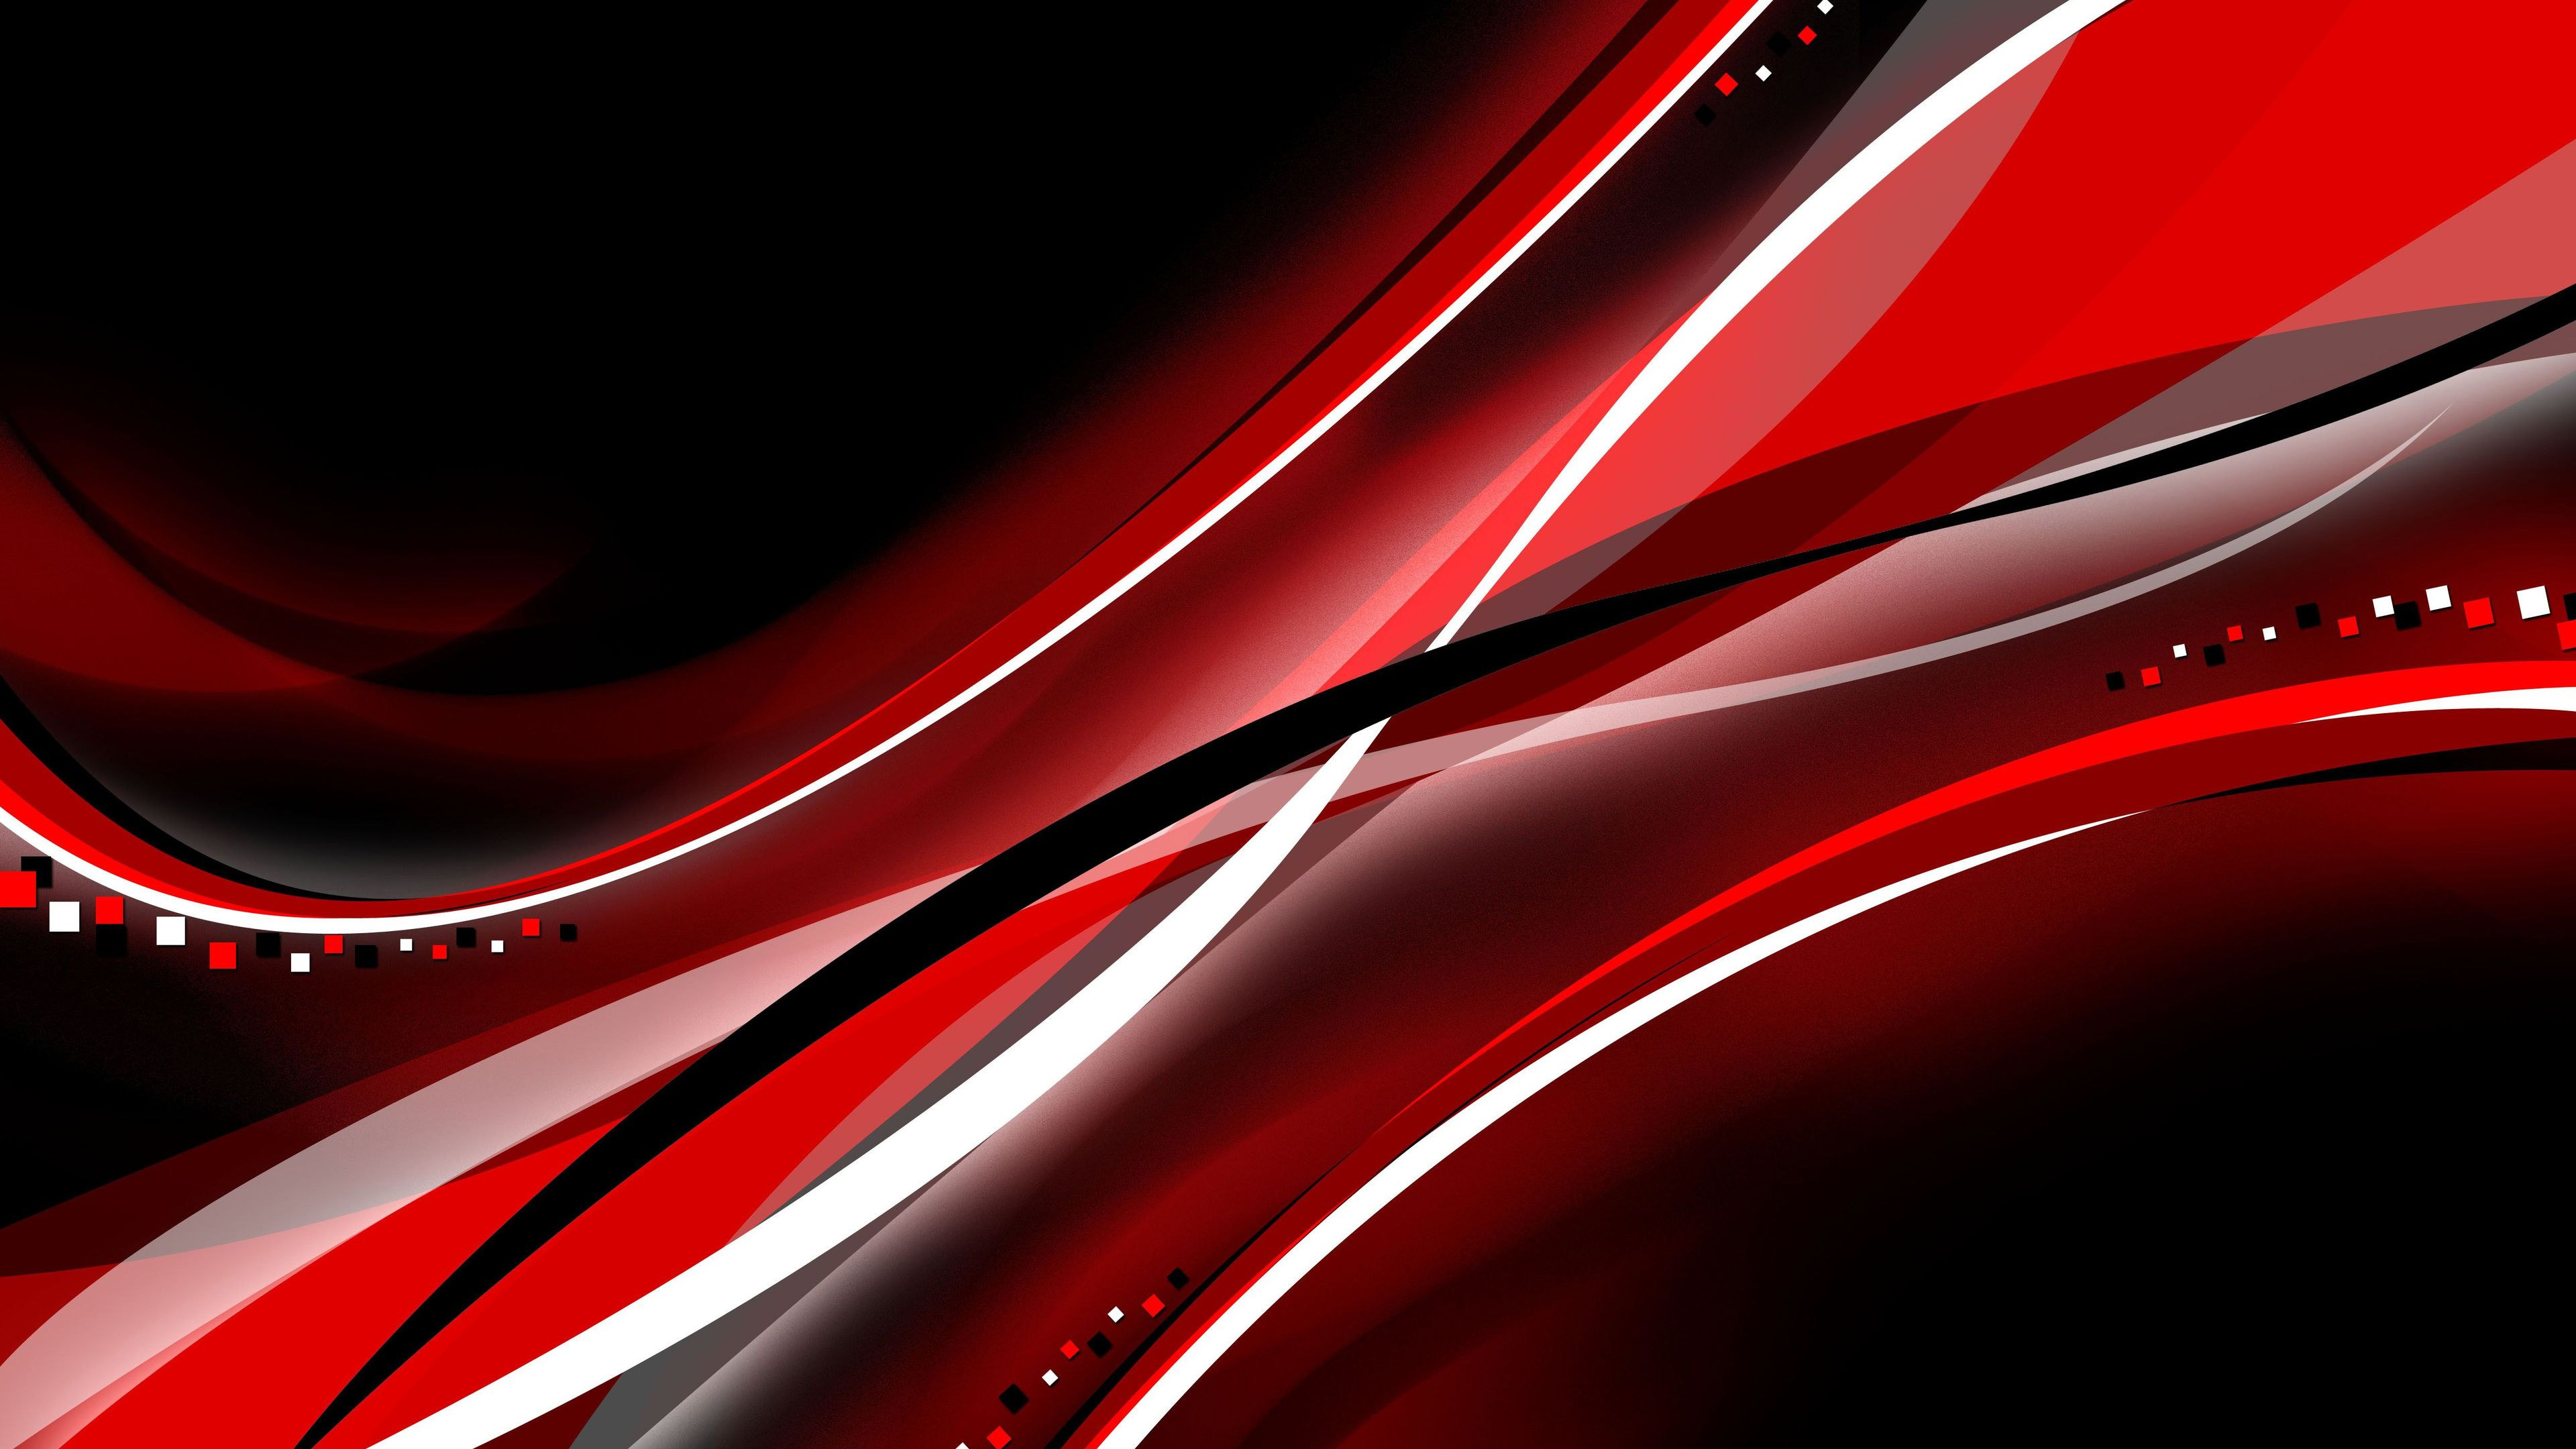 Red Black Color Interval Abstract 4k Wallpaper